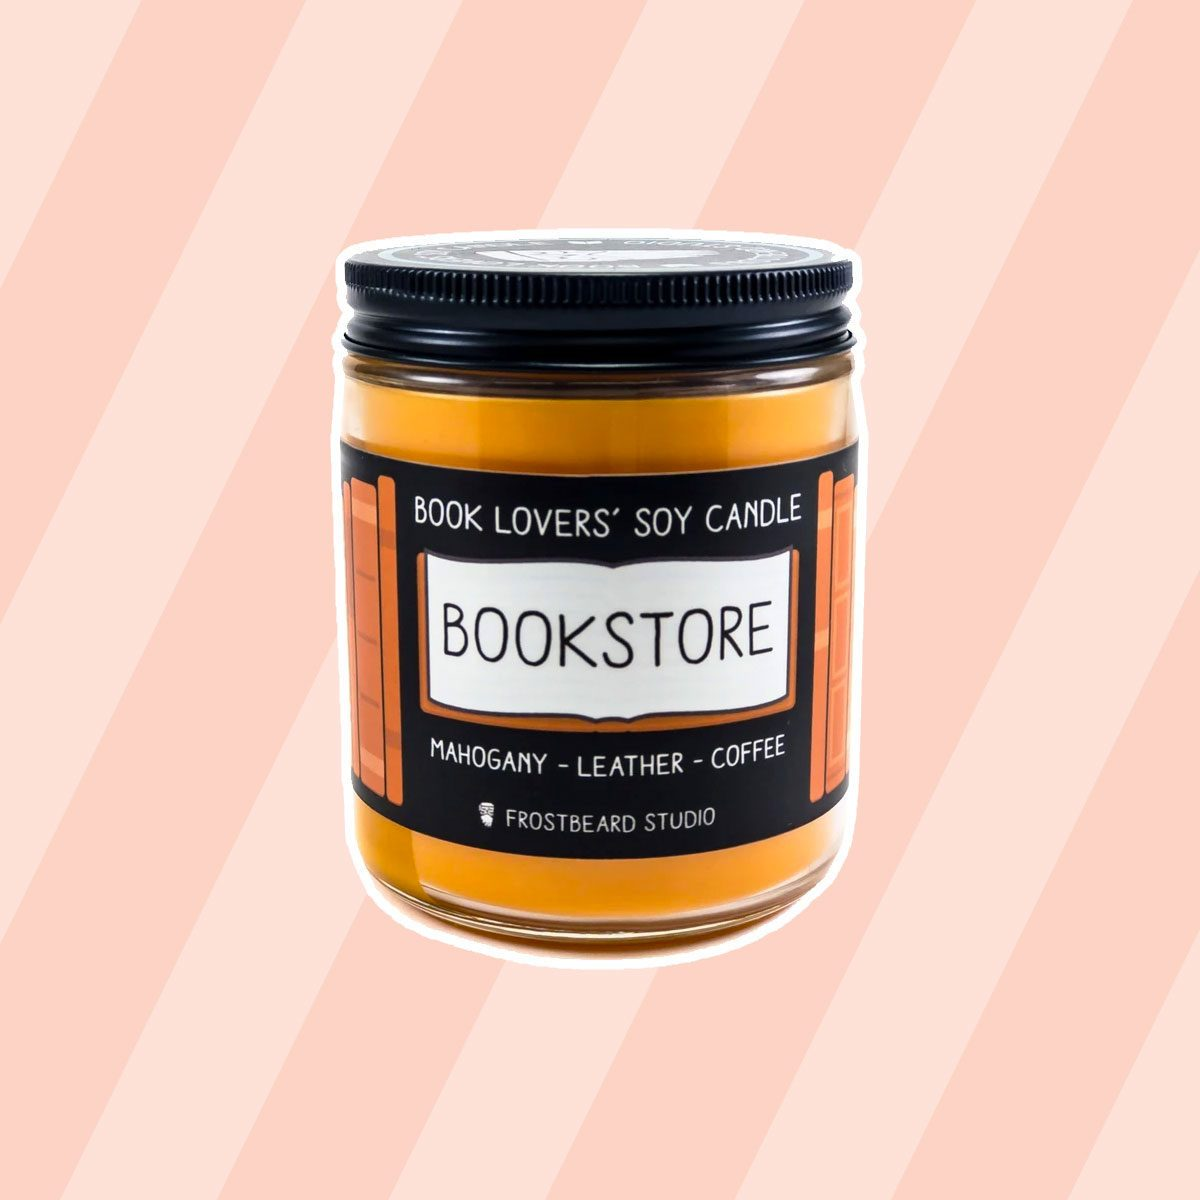 Bookstore Soy Candle